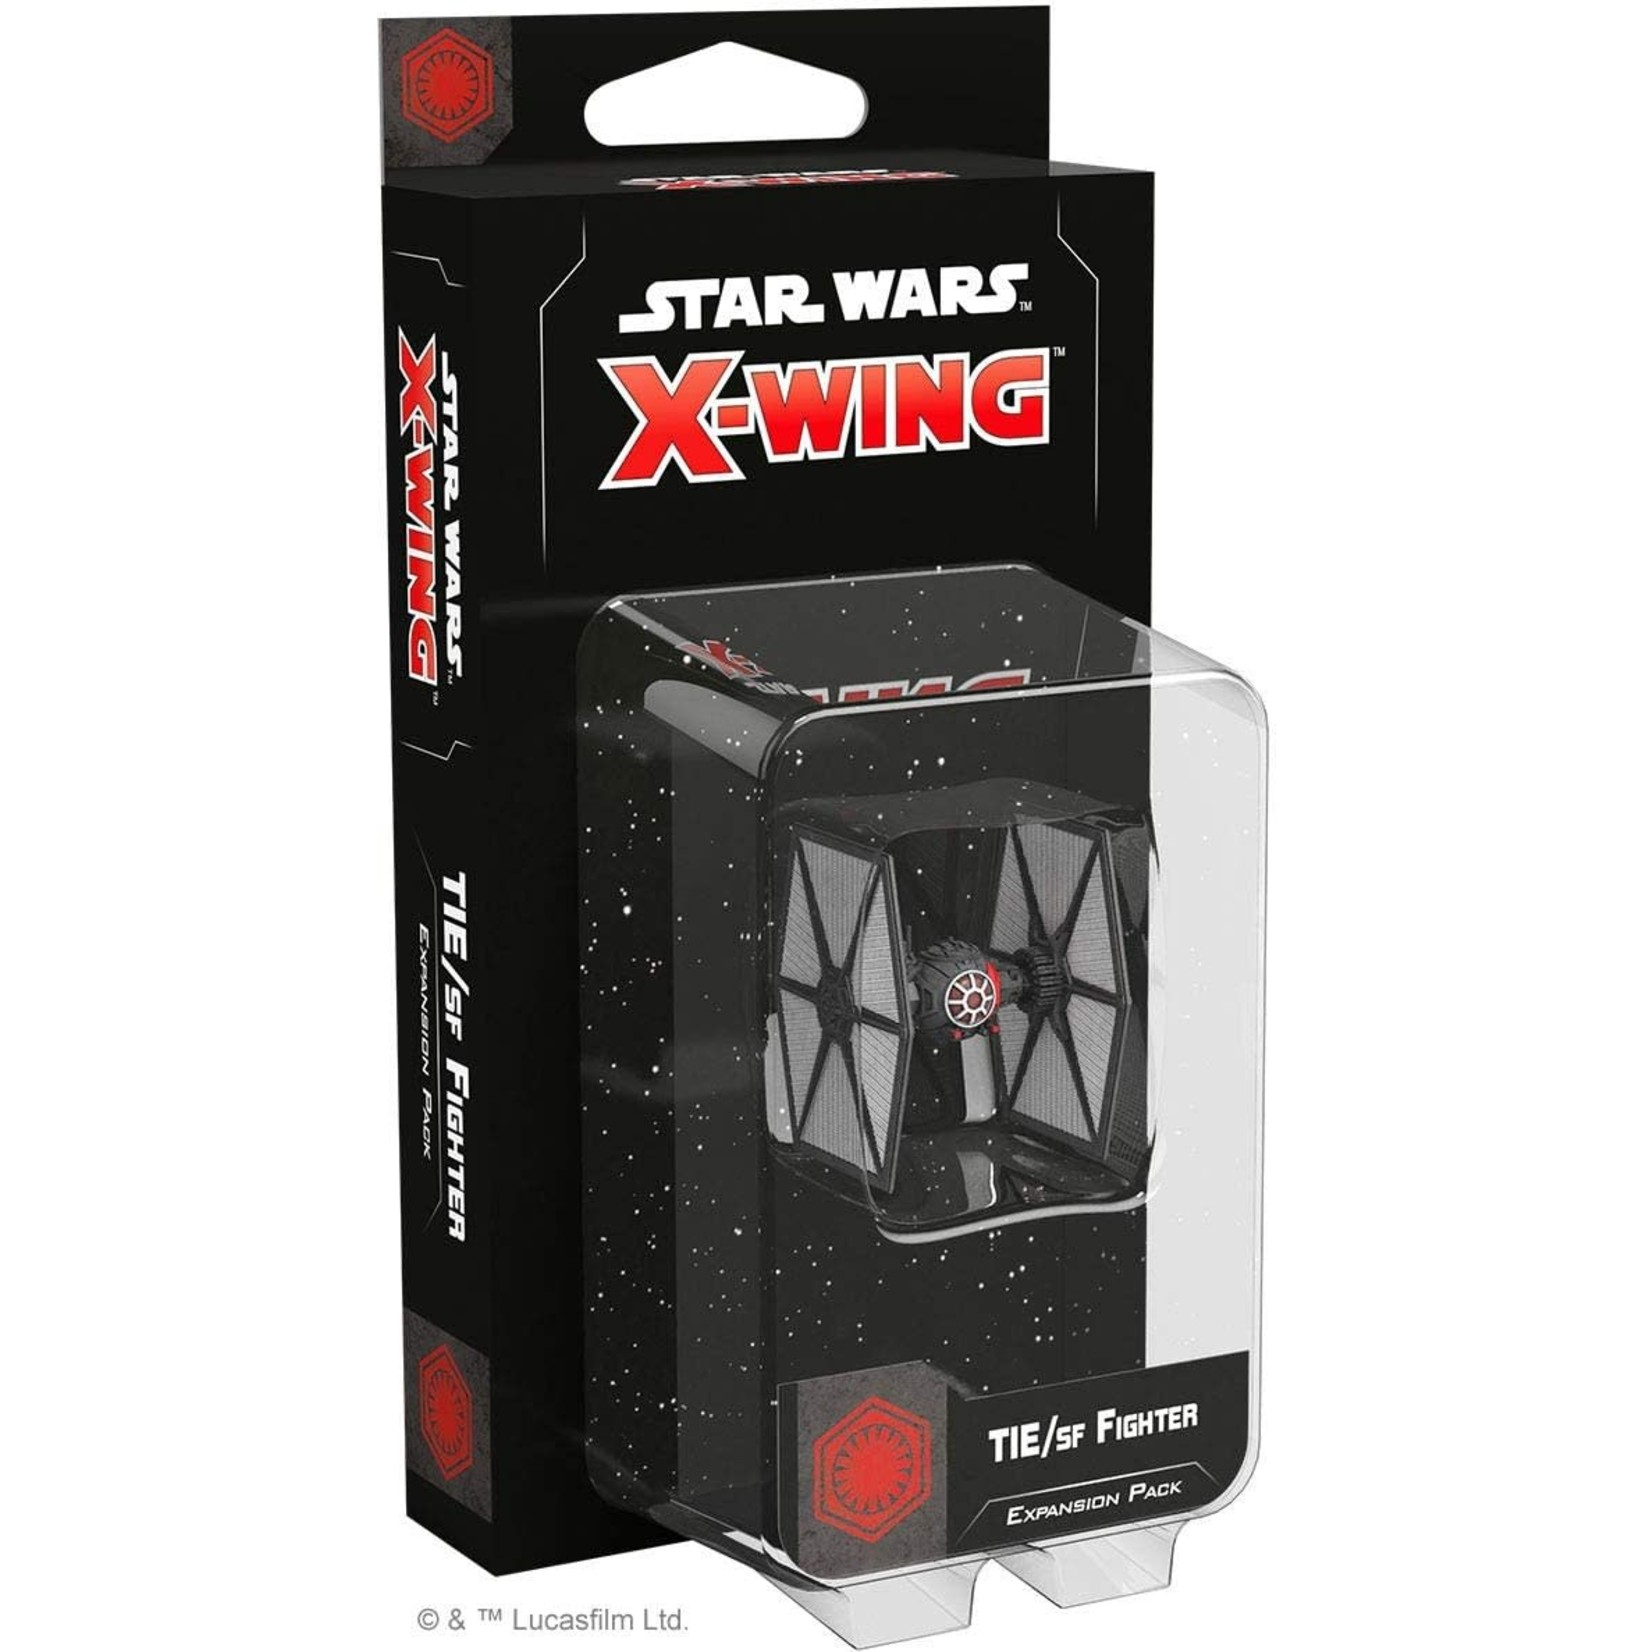 Star Wars X-Wing 2e: TIE /SF Fighter Expansion Pack